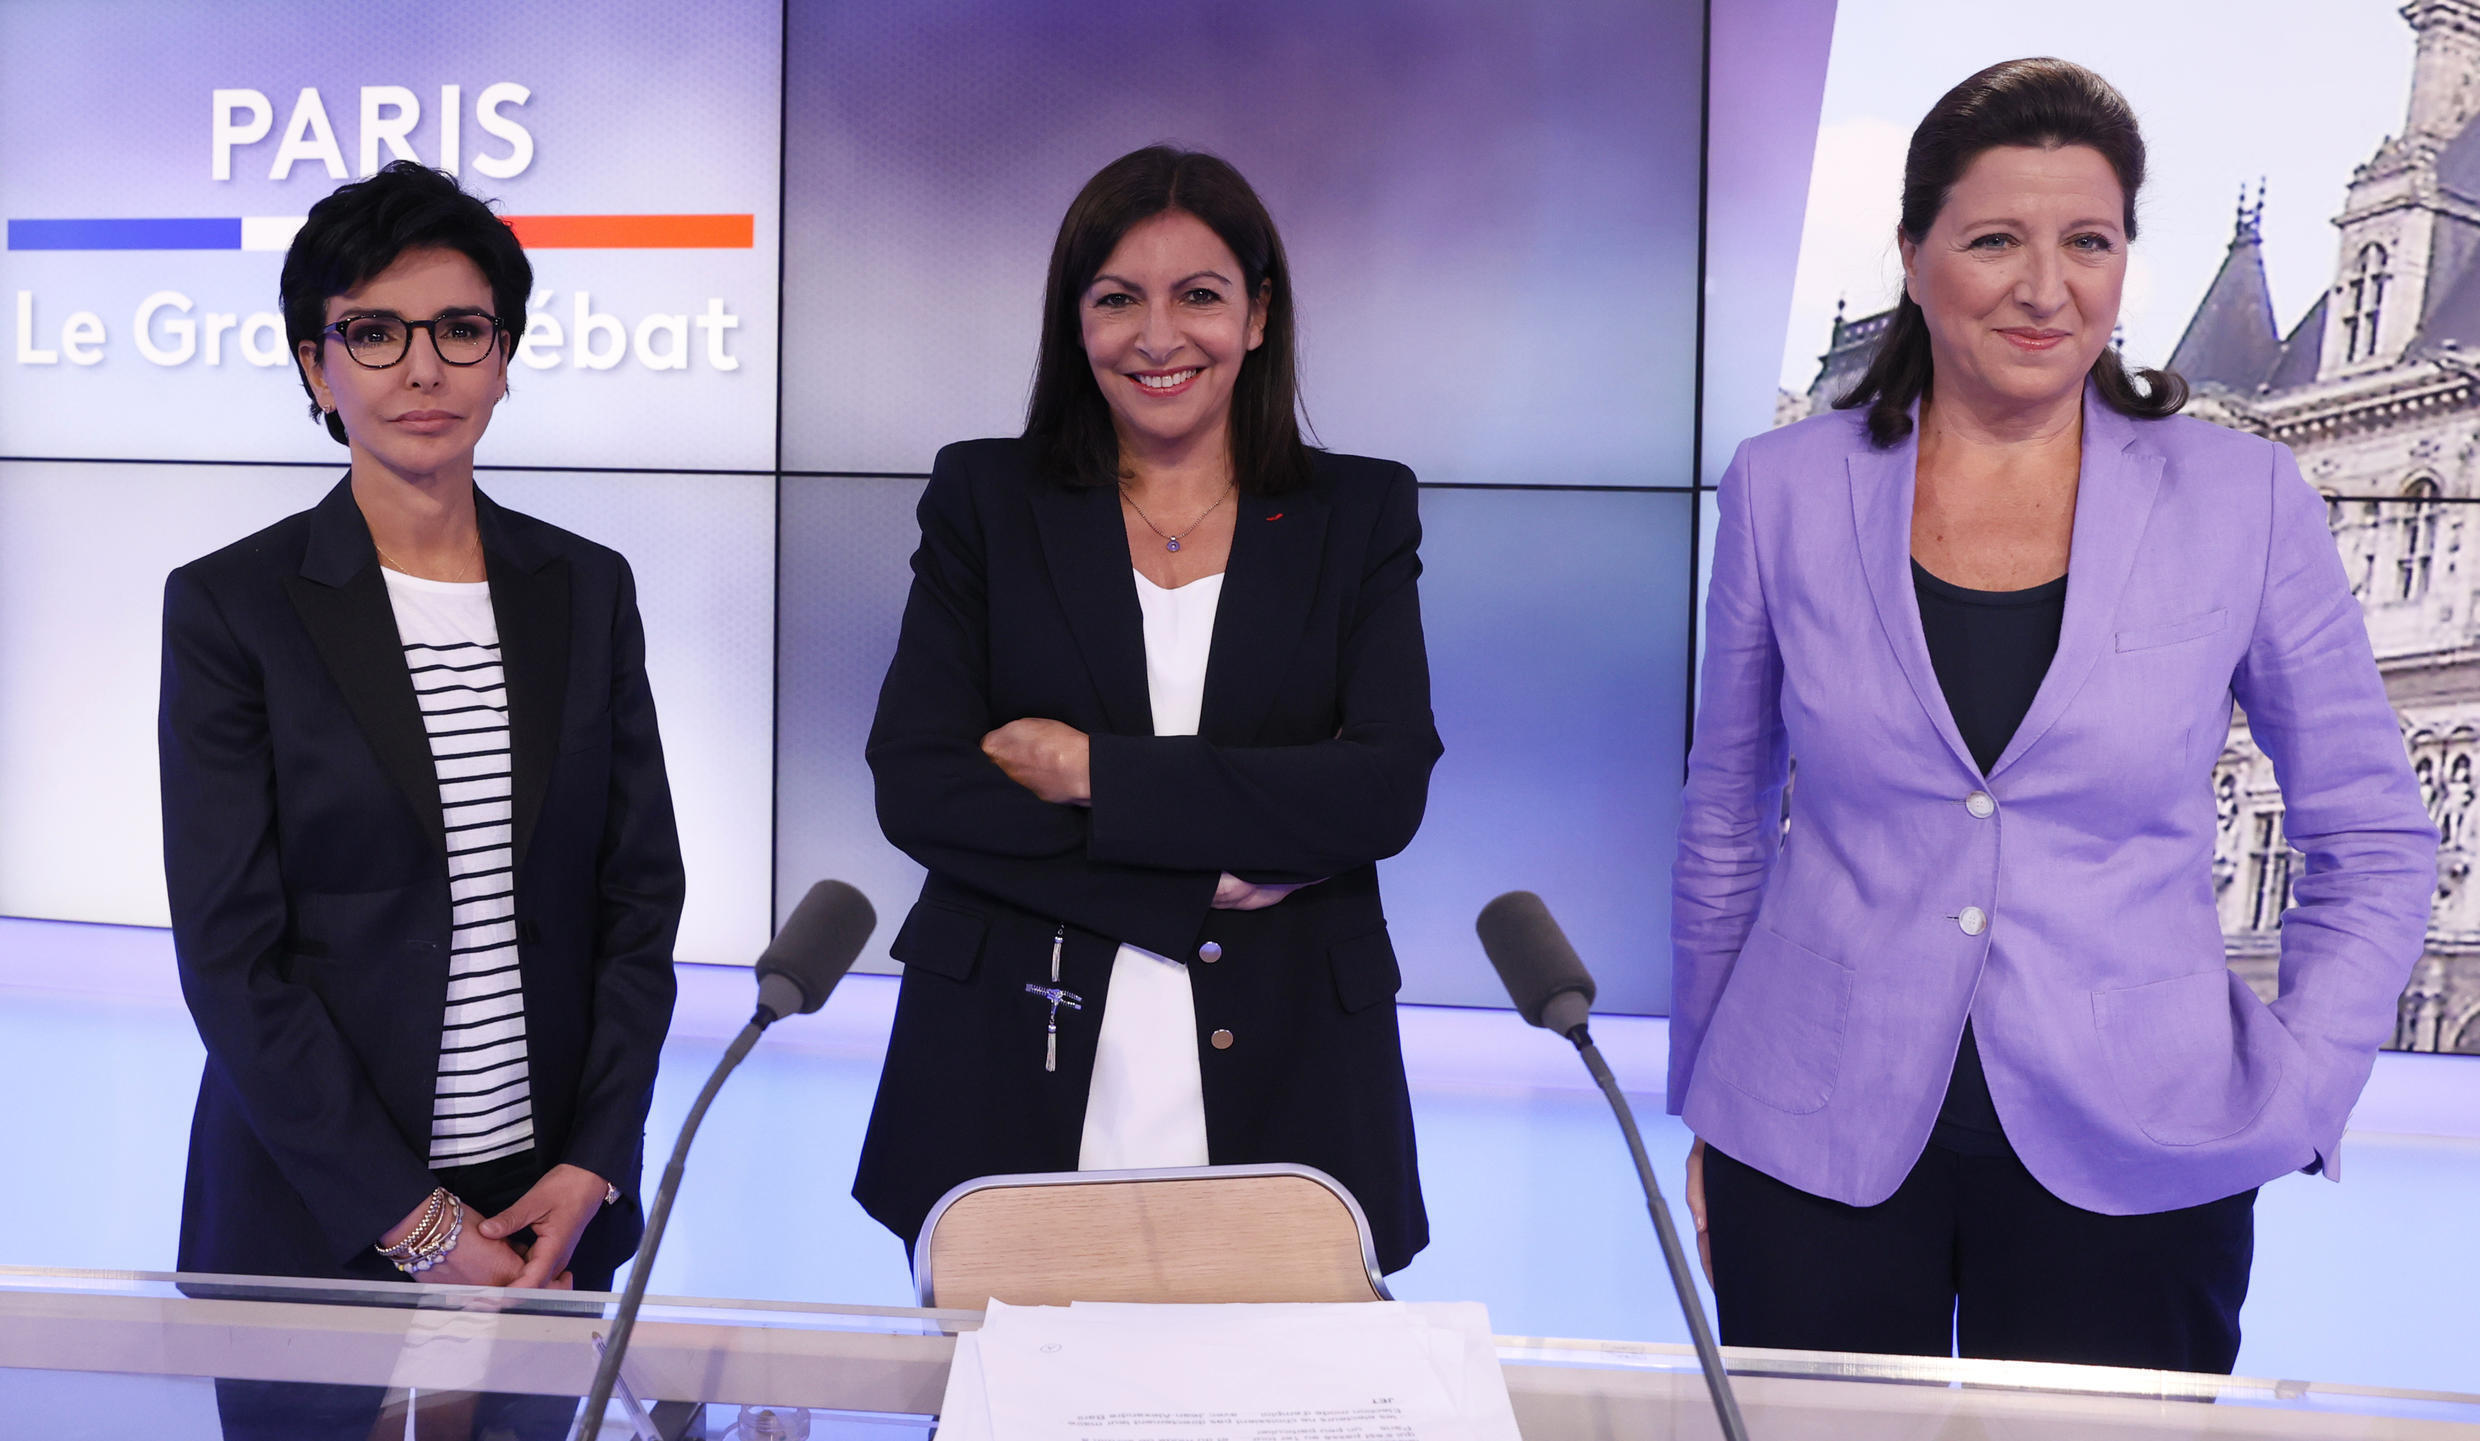 "The three Paris city hall candidates in the upcoming mayoral elections on 2020, Member of the French right-wing Les Republicains (LR) party Rachida Dati (L), Socialist Party (PS) and Paris mayor Anne Hidalgo (C) and La Republique en Marche (LREM) Agnes Buzyn (R), pose prior the start of the of Tv program "" Le Grand Debat "" on France 3 channel in Paris, on June 17, 2020."